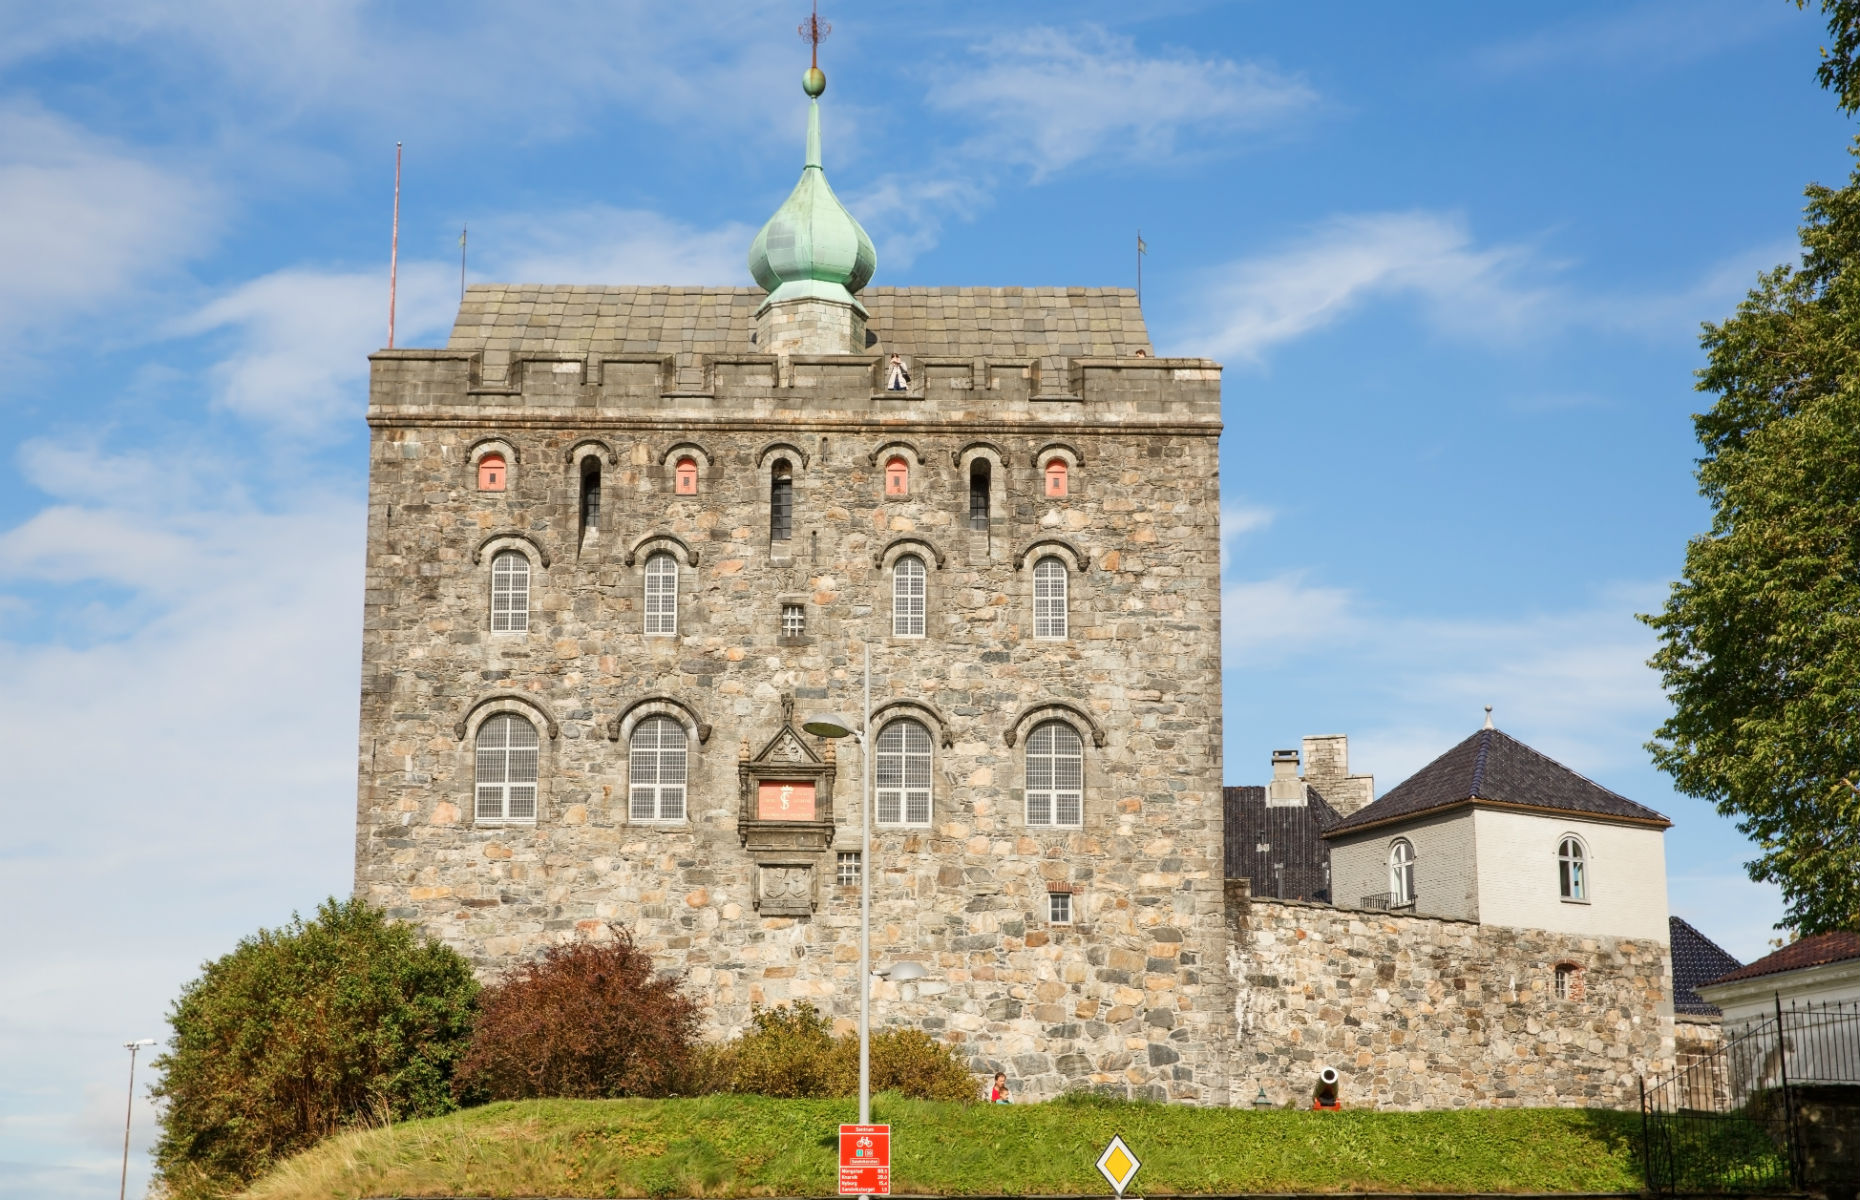 An outside view of Bergenhus Festning fortress (Image: ruzanna/Shutterstock)